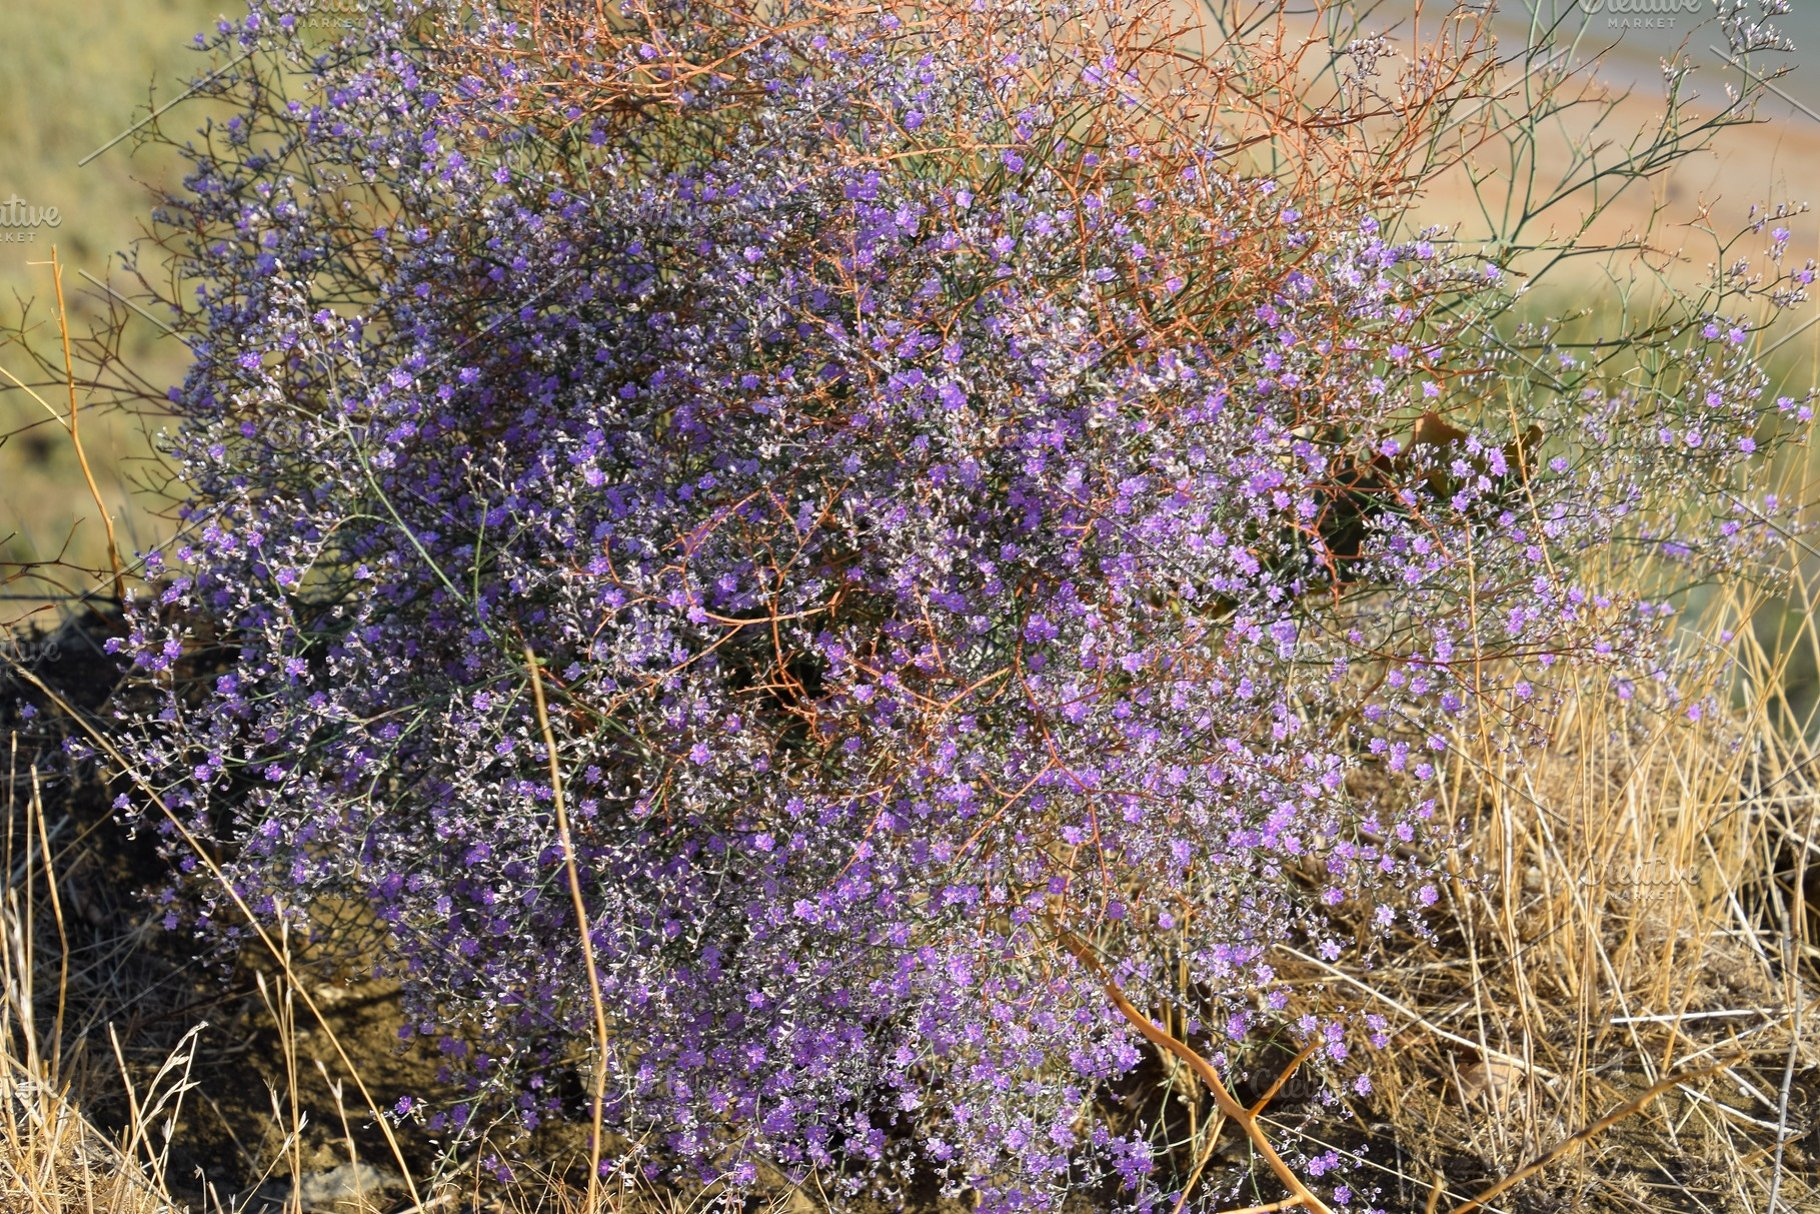 Small Purple Flowers Growing On The High Quality Nature Stock